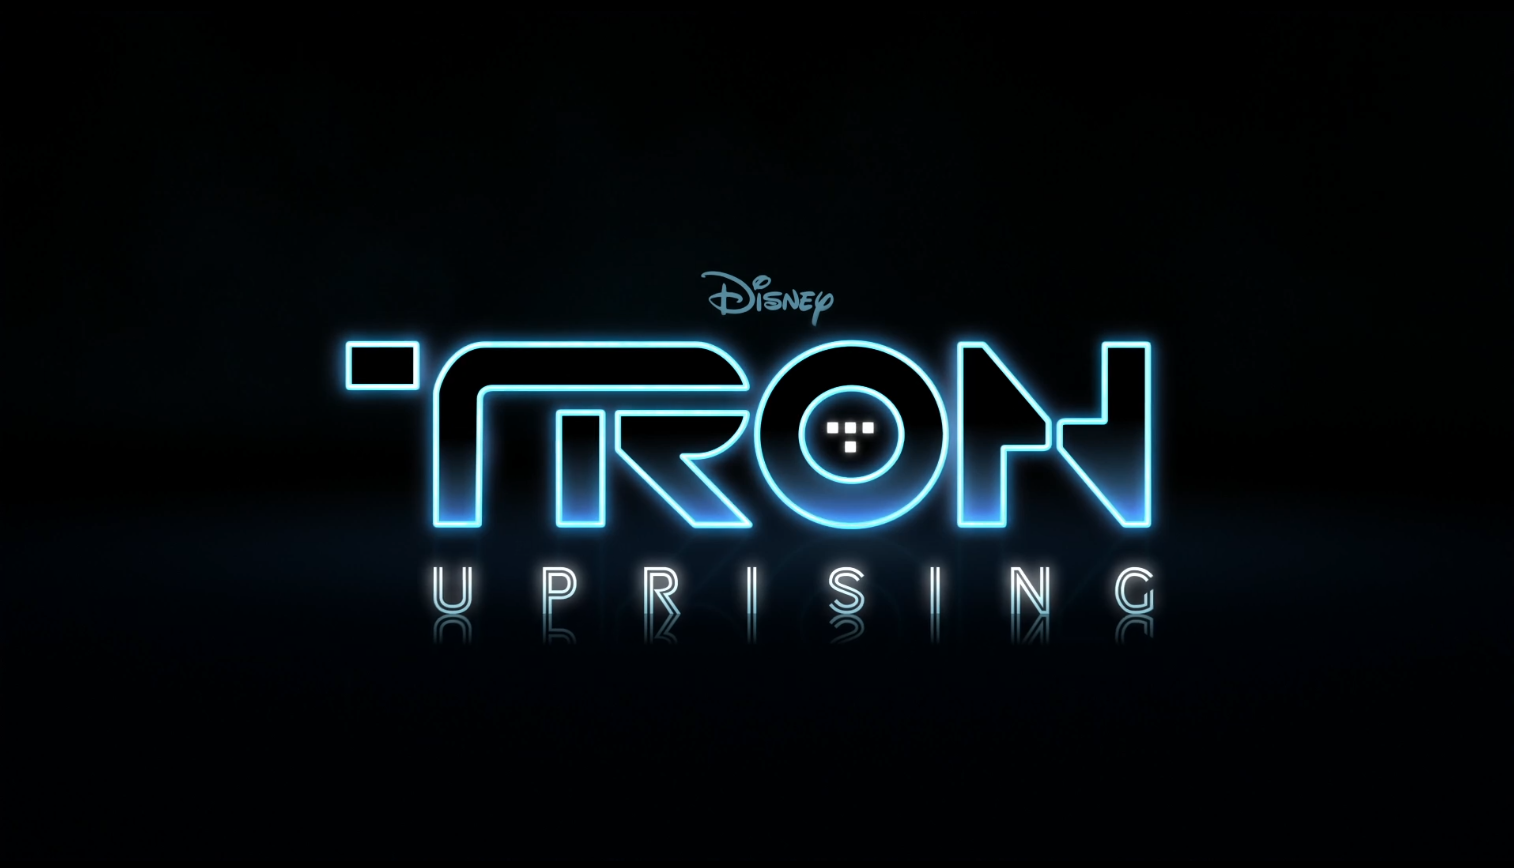 Tron Uprising logo